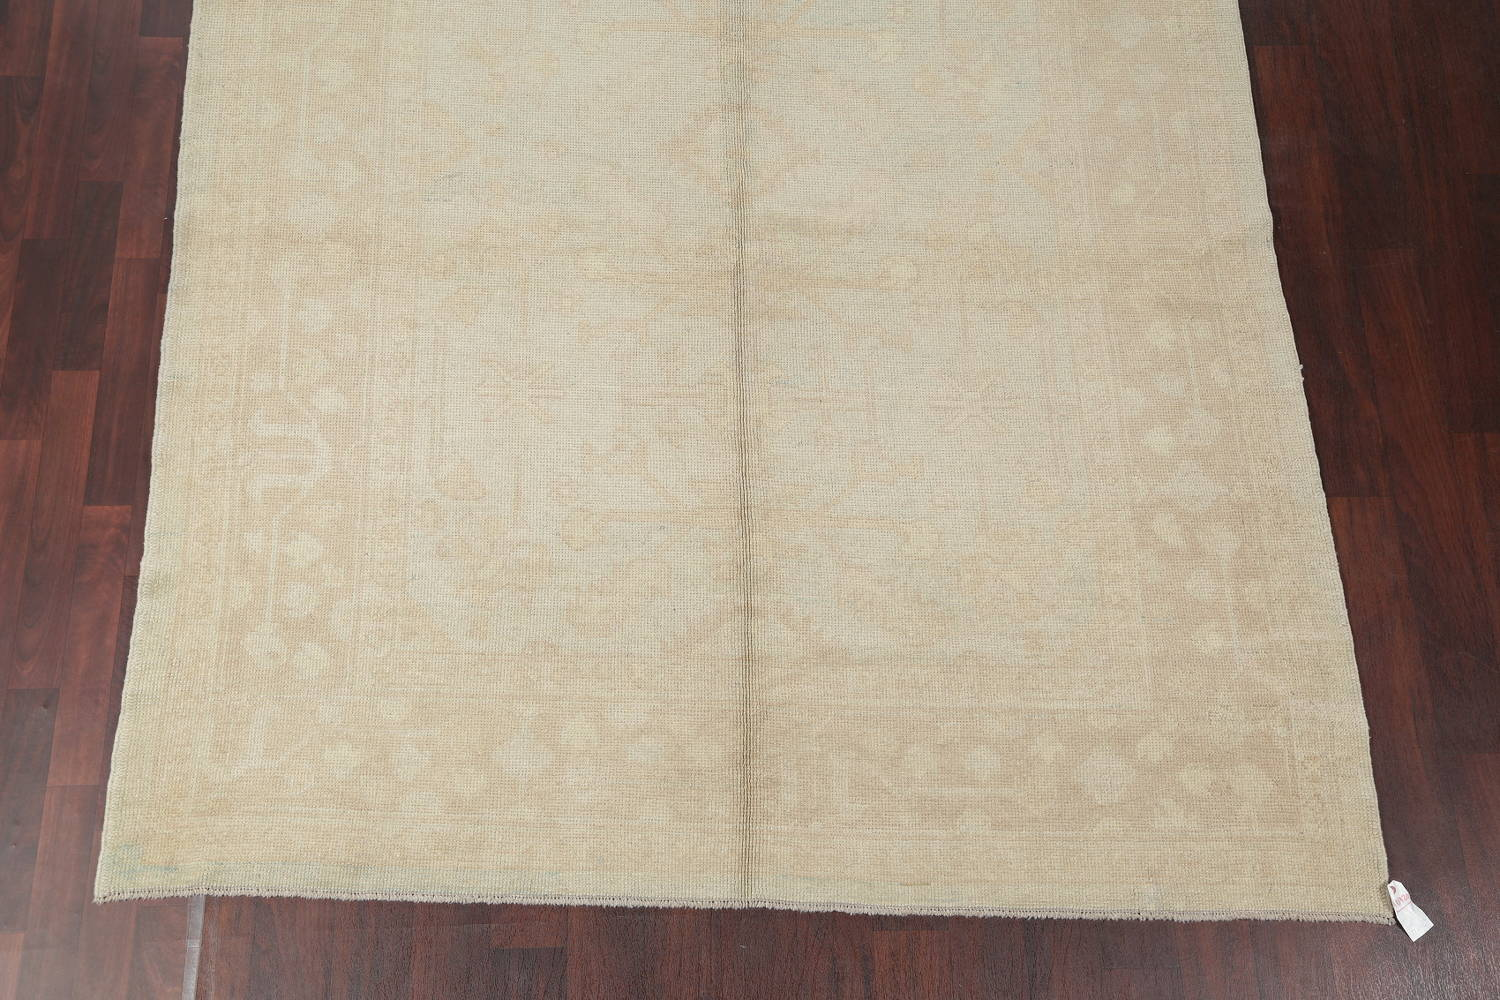 Vegetable Dye Muted Pale Blue Oushak Turkish Hand-Knotted Runner Rug 7x17 image 5